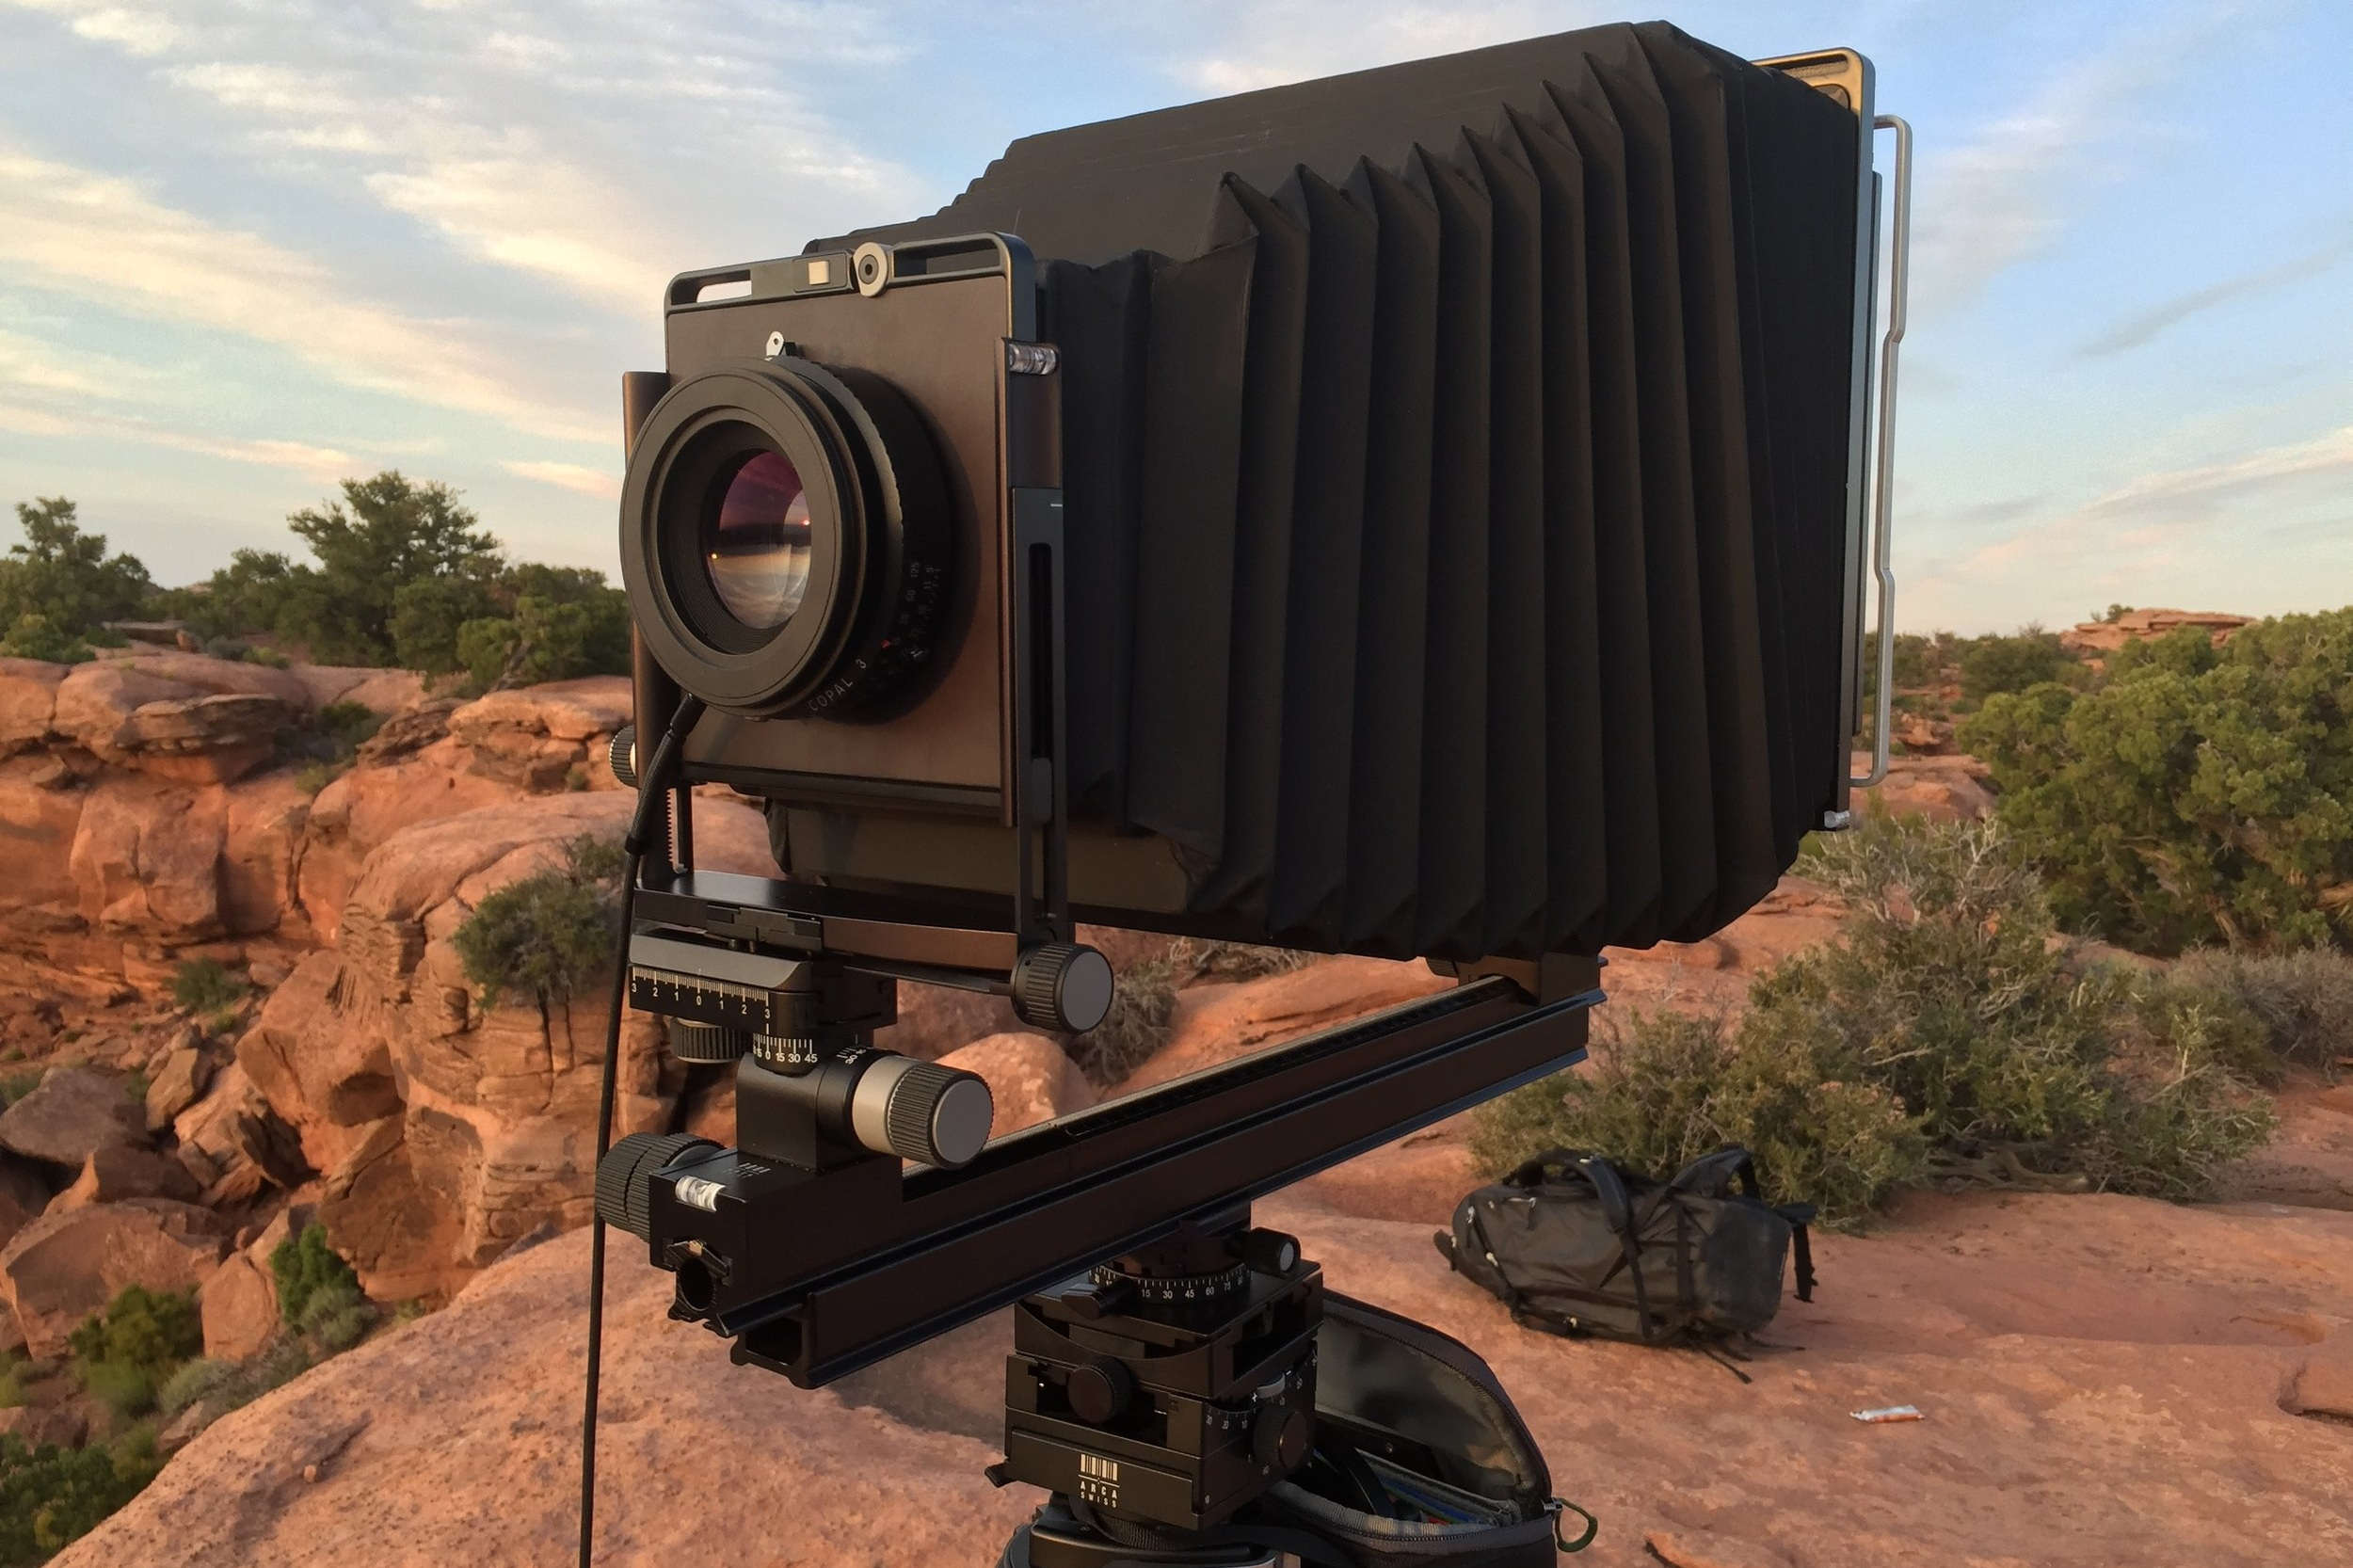 My large format, Arca Swiss 8x10, set up in the field.